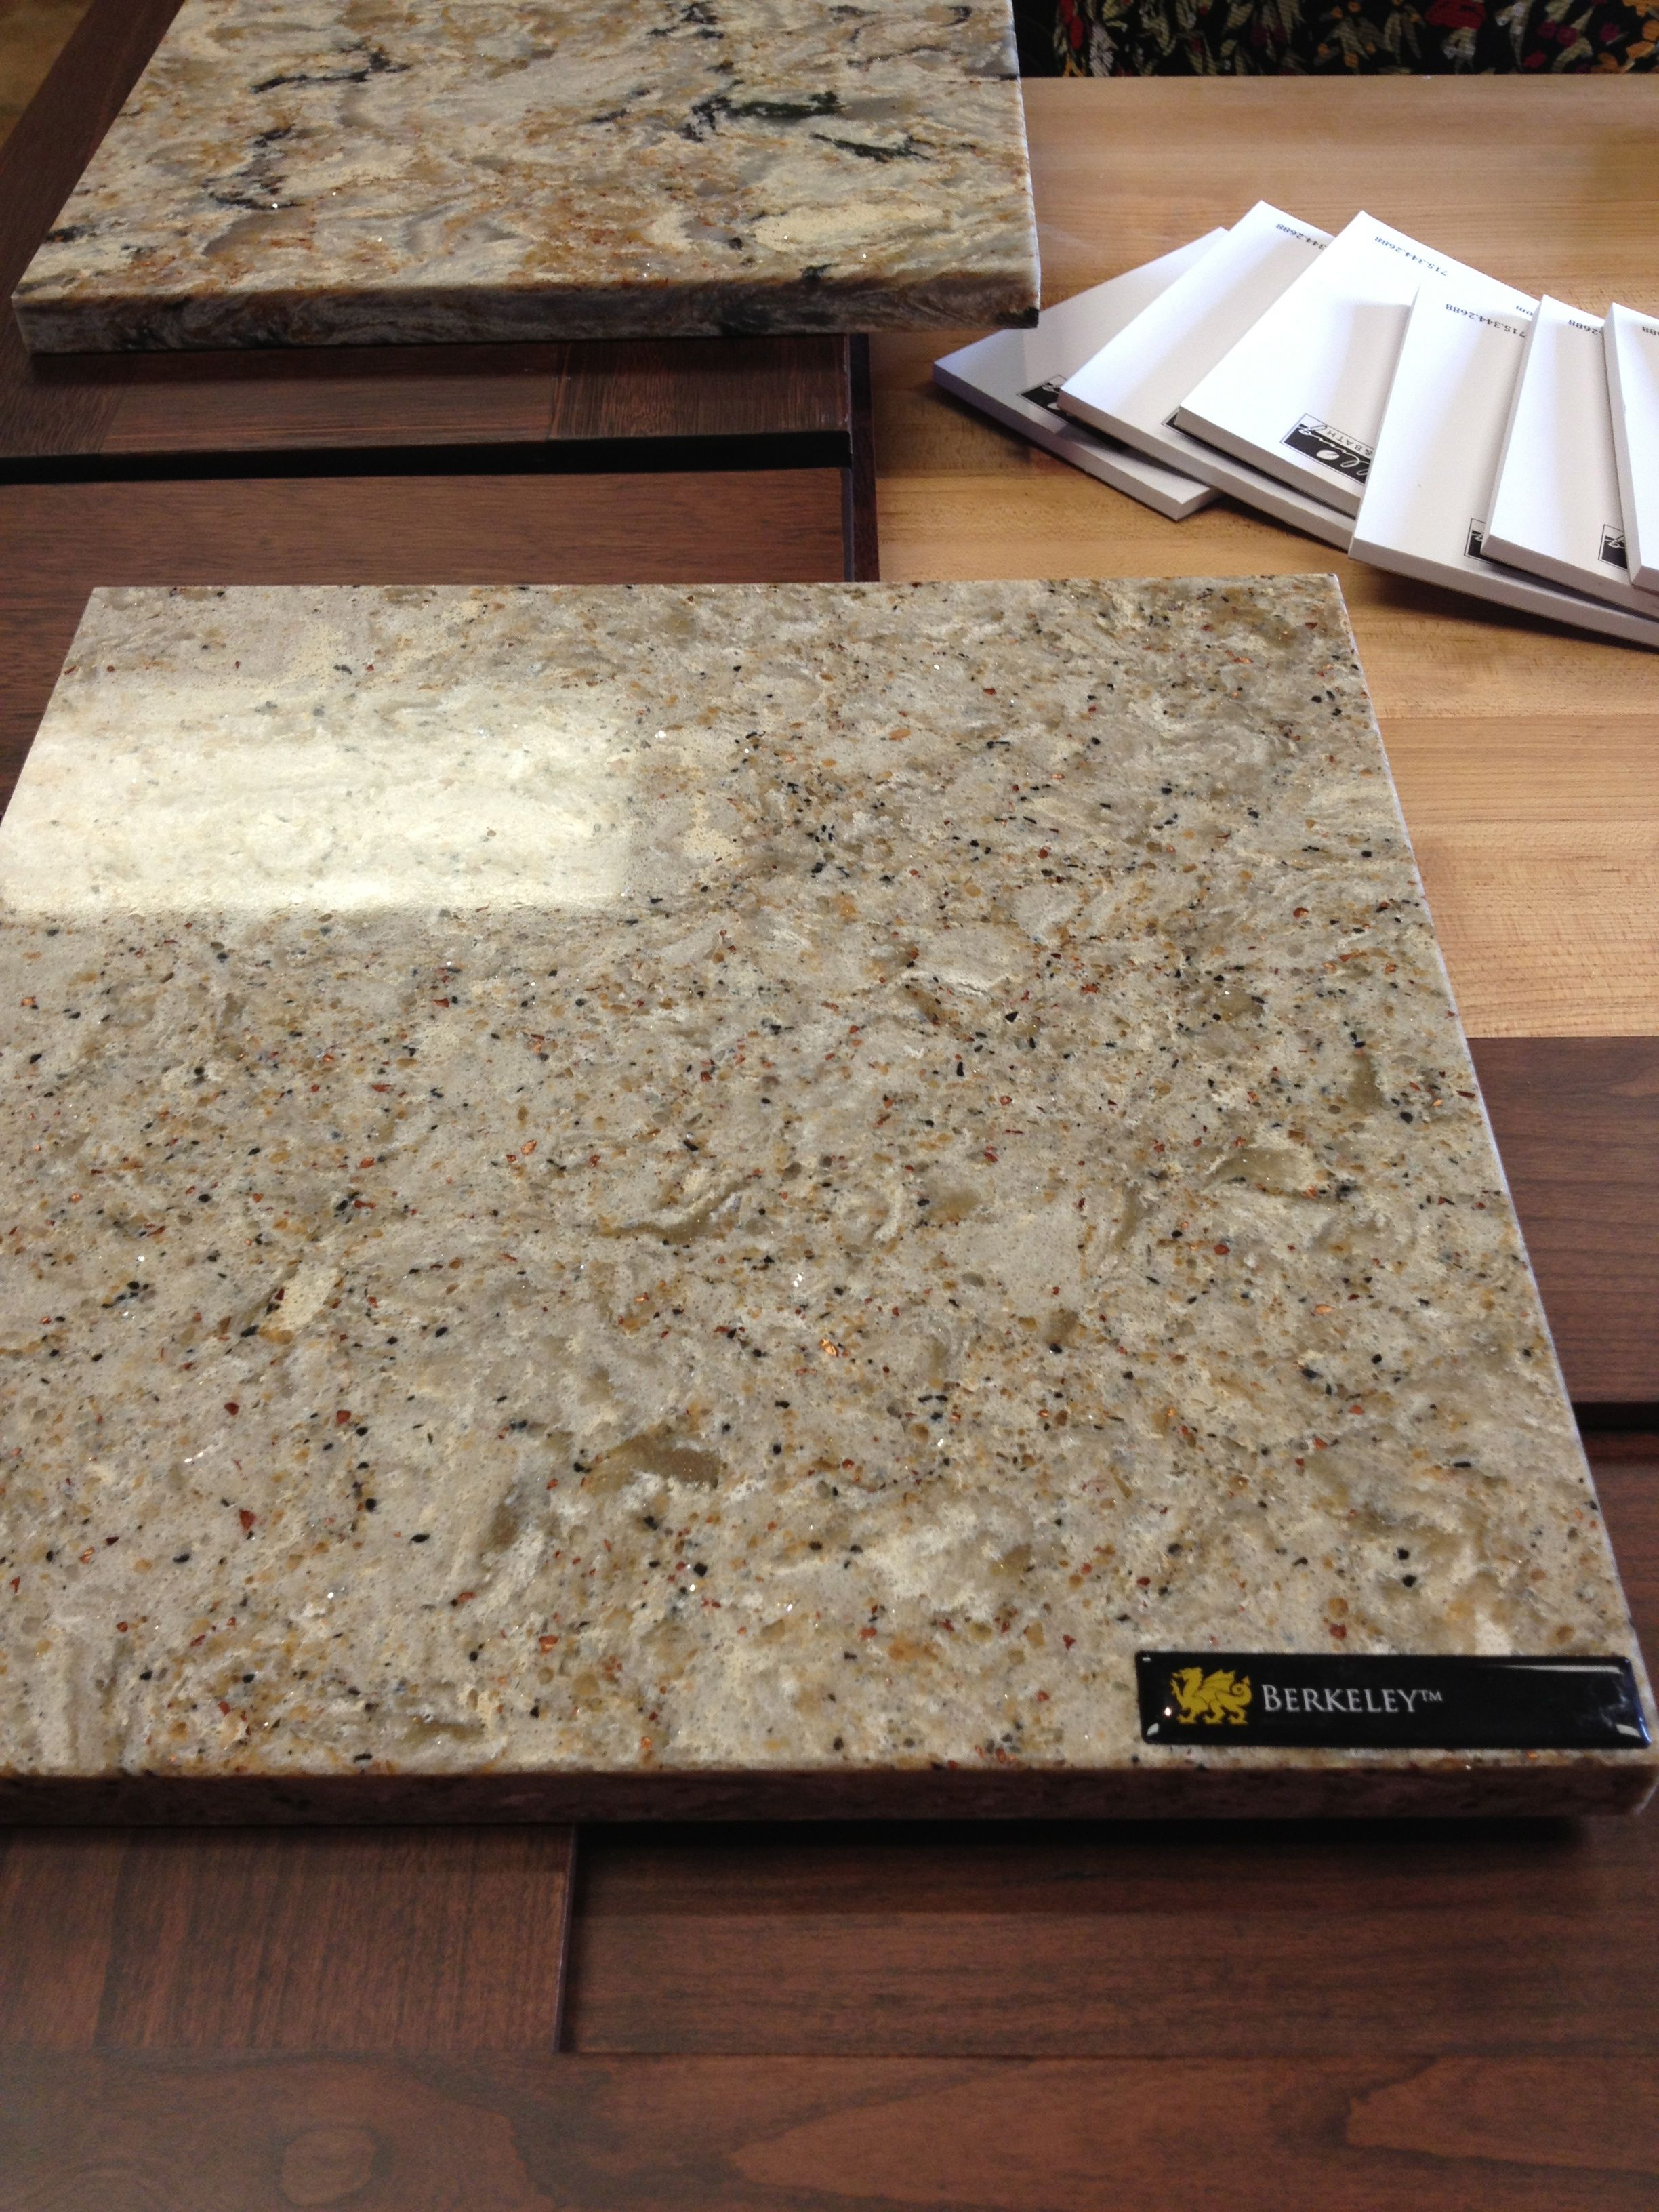 Cambria Berkeley Quartz Countertop For Master Bathroom